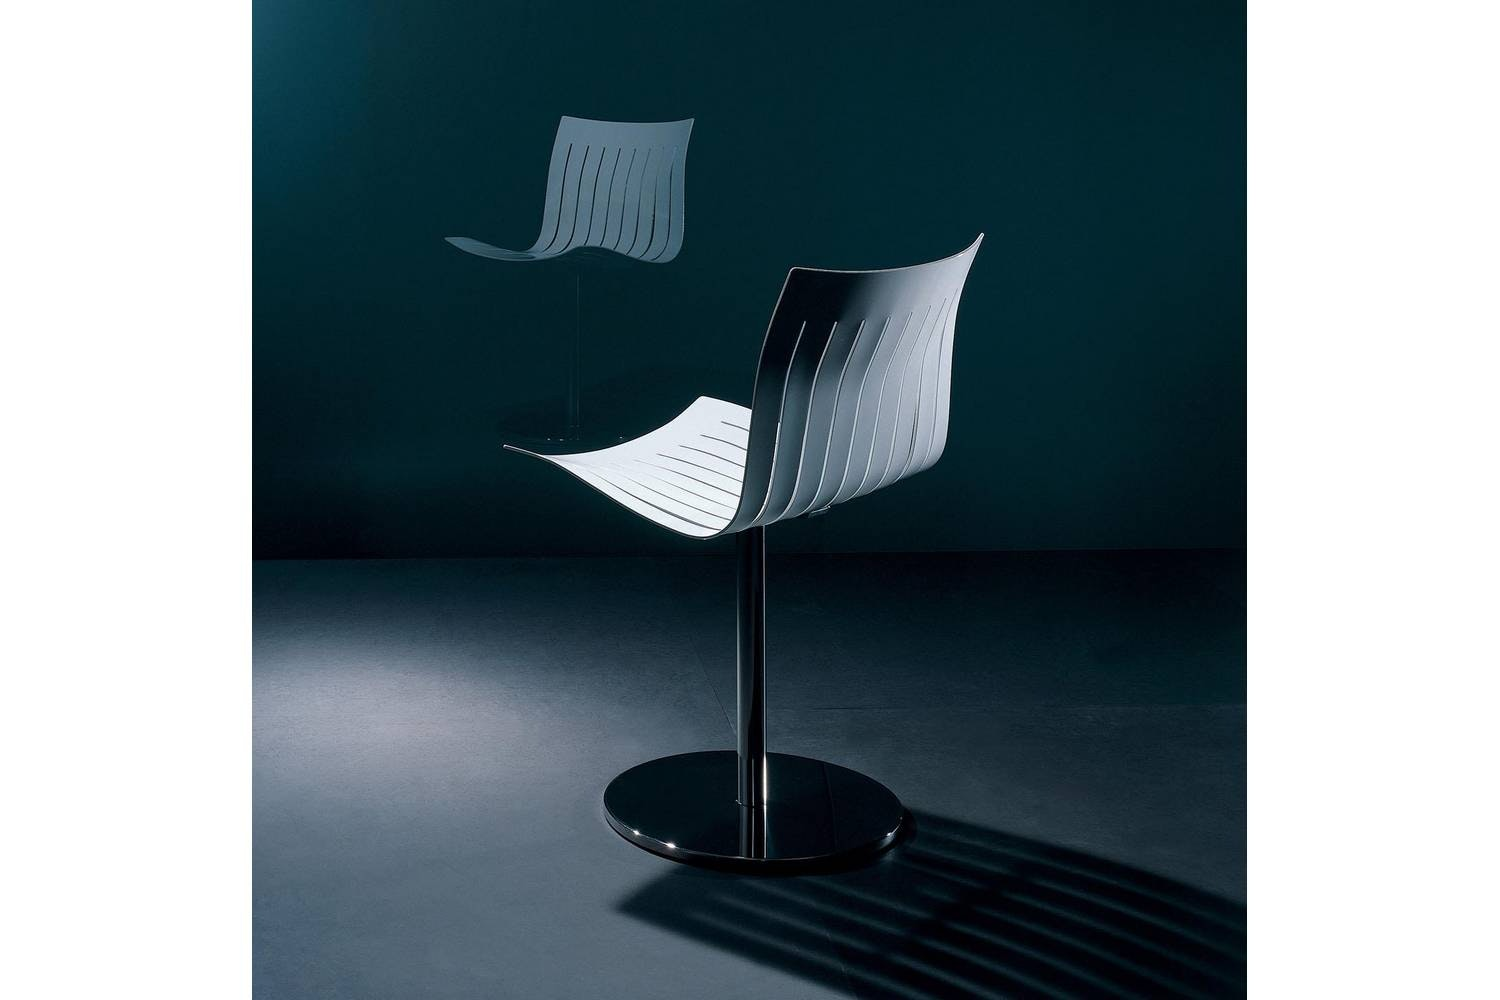 Airy Chair by Piergiorgio Cazzaniga for Acerbis